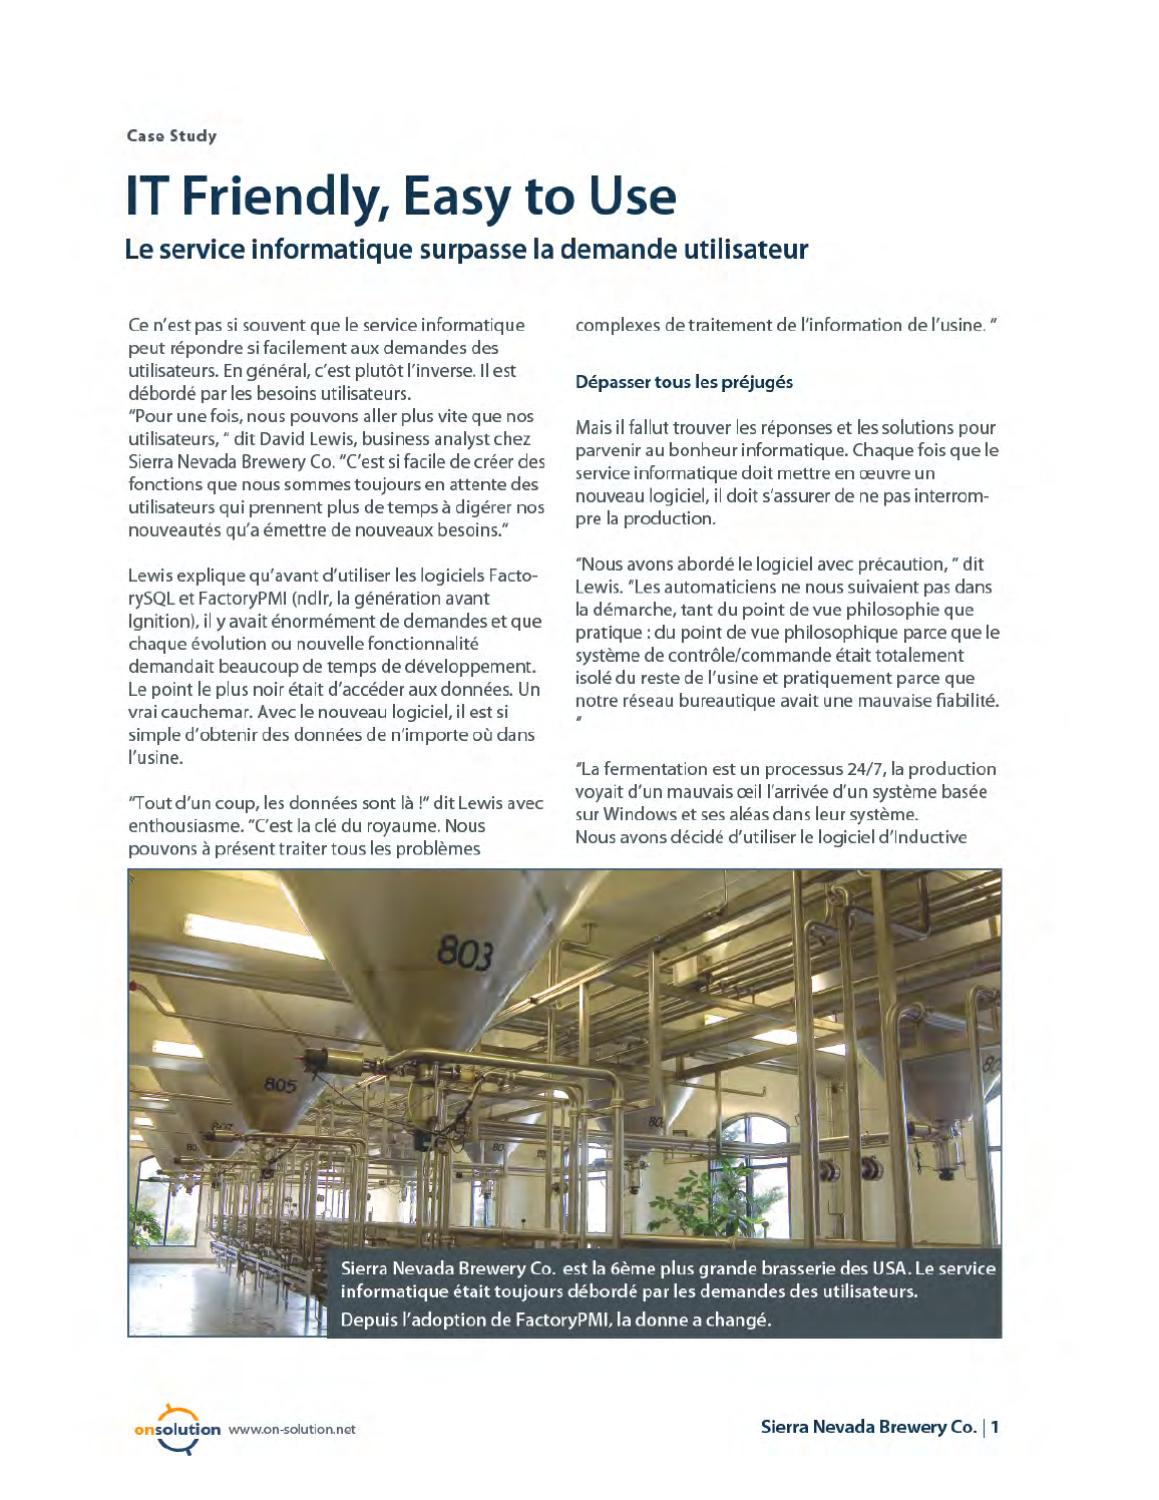 swisher systems case study Swisher systems corporation (ssc) is an industrial heating company that was established in 1949 (w c benton, 2010) ssc is an innovator of flexible heating products, particularly with its knit and braided heating element the heating element consists of a multi-stranded resistance wire which.